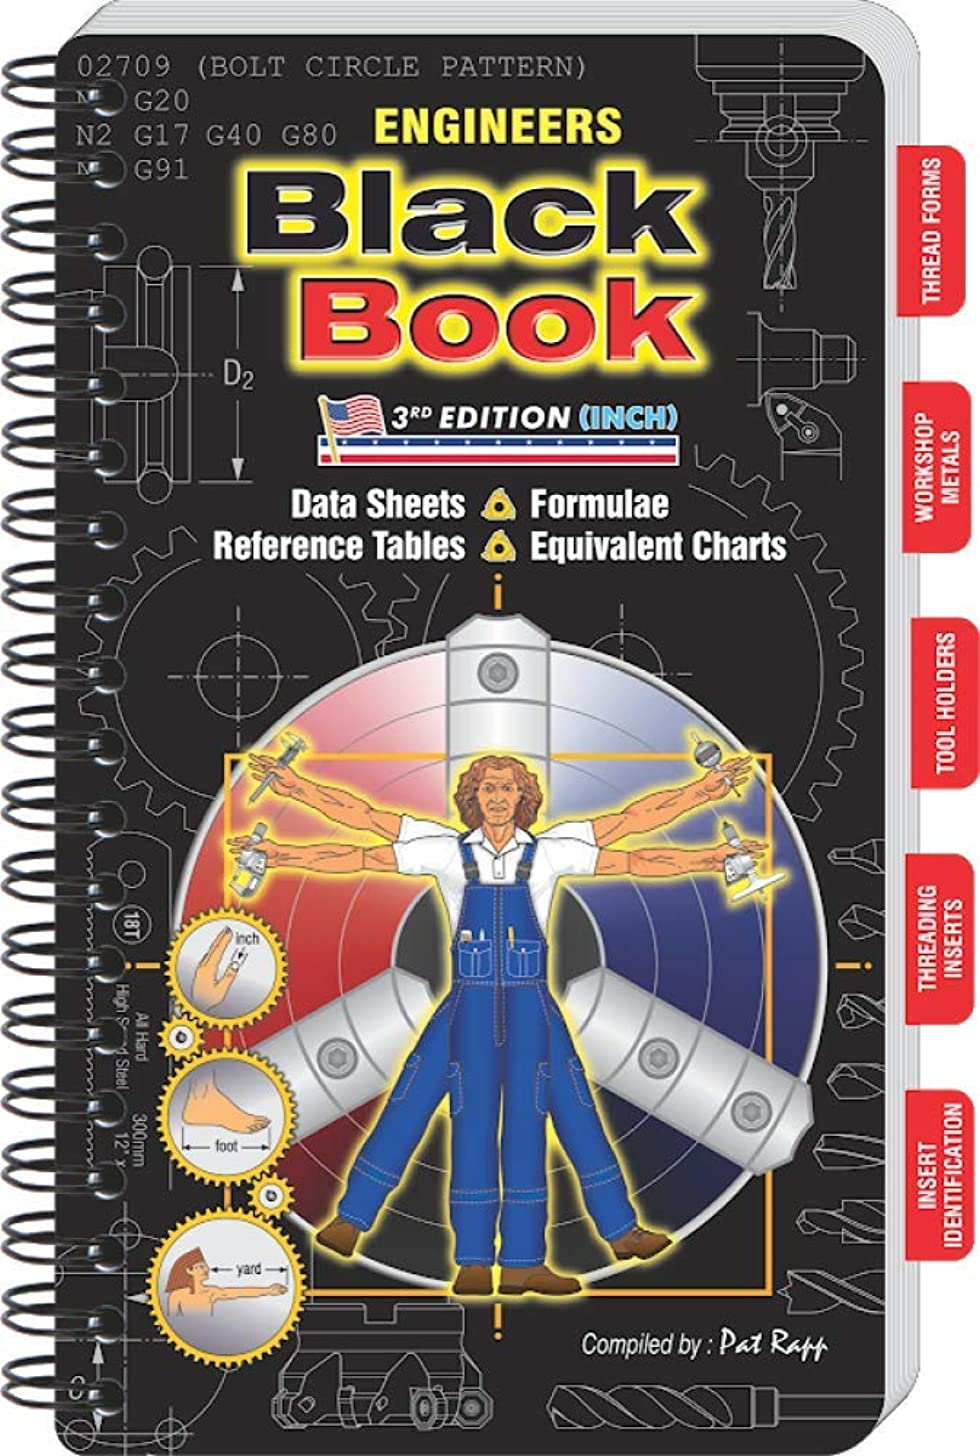 Engineers Black Book - 3rd Edition Inch